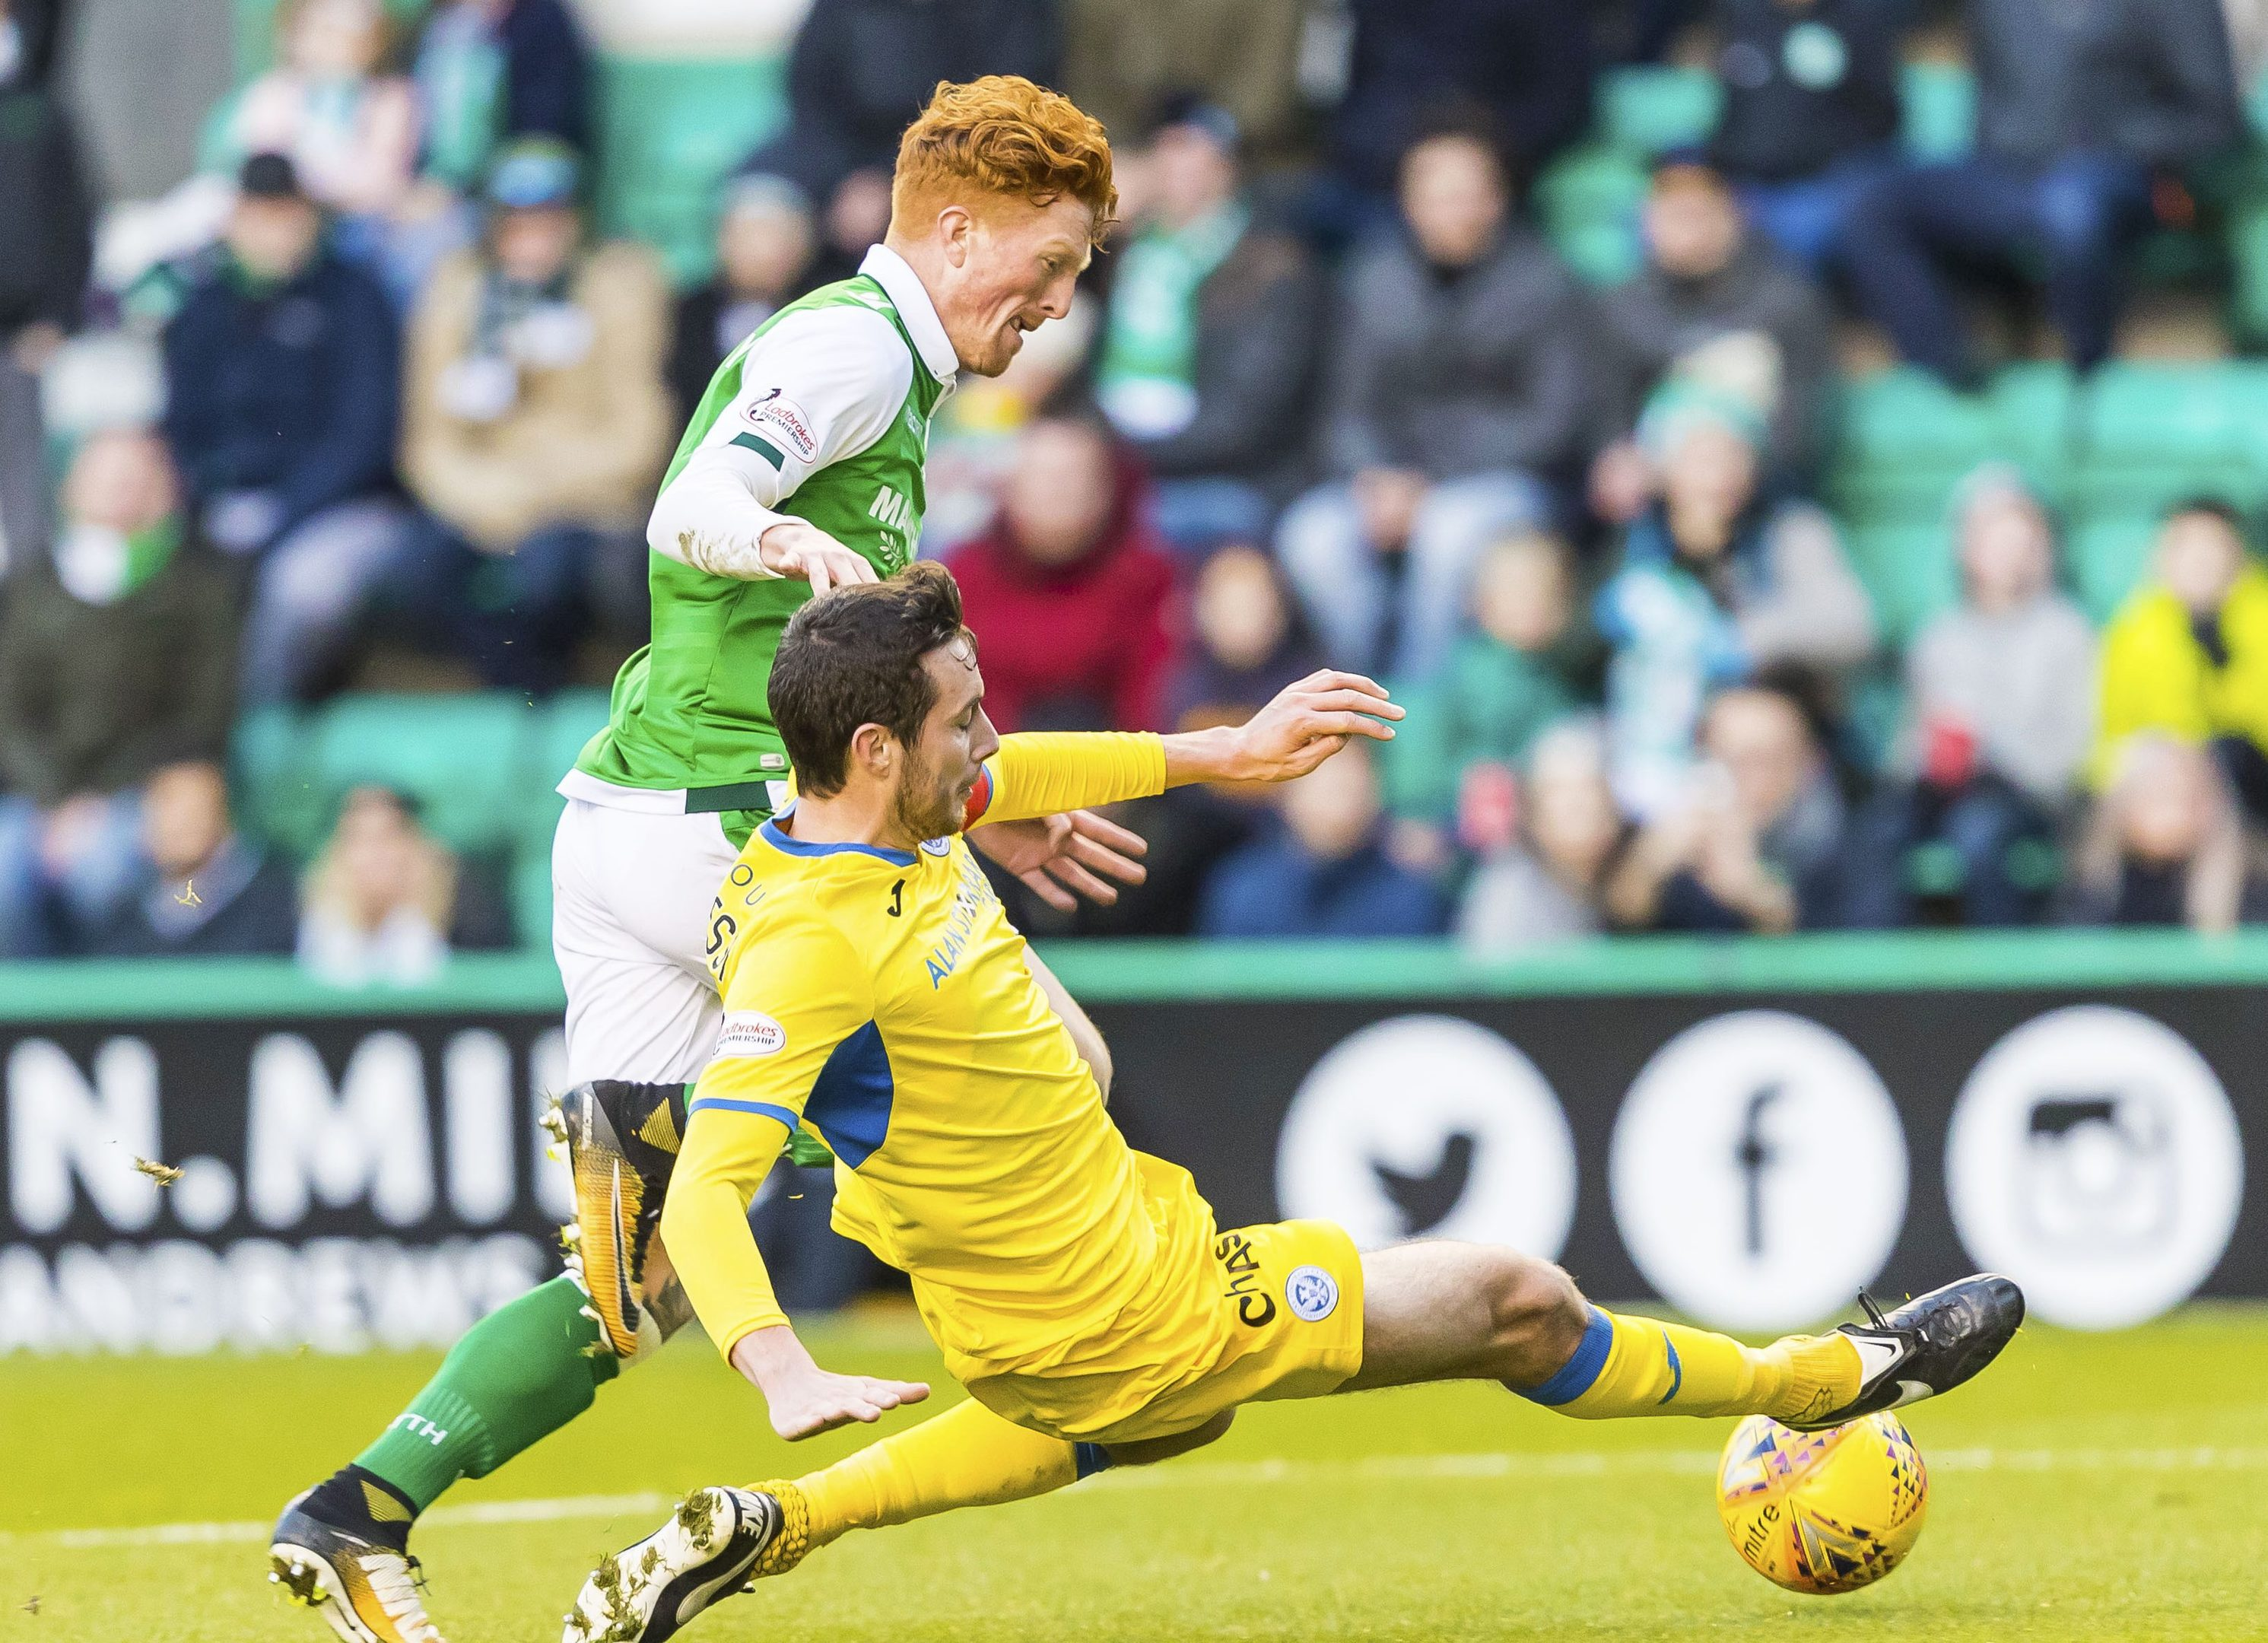 Joe Shaughnessy challenges Simon Murray.